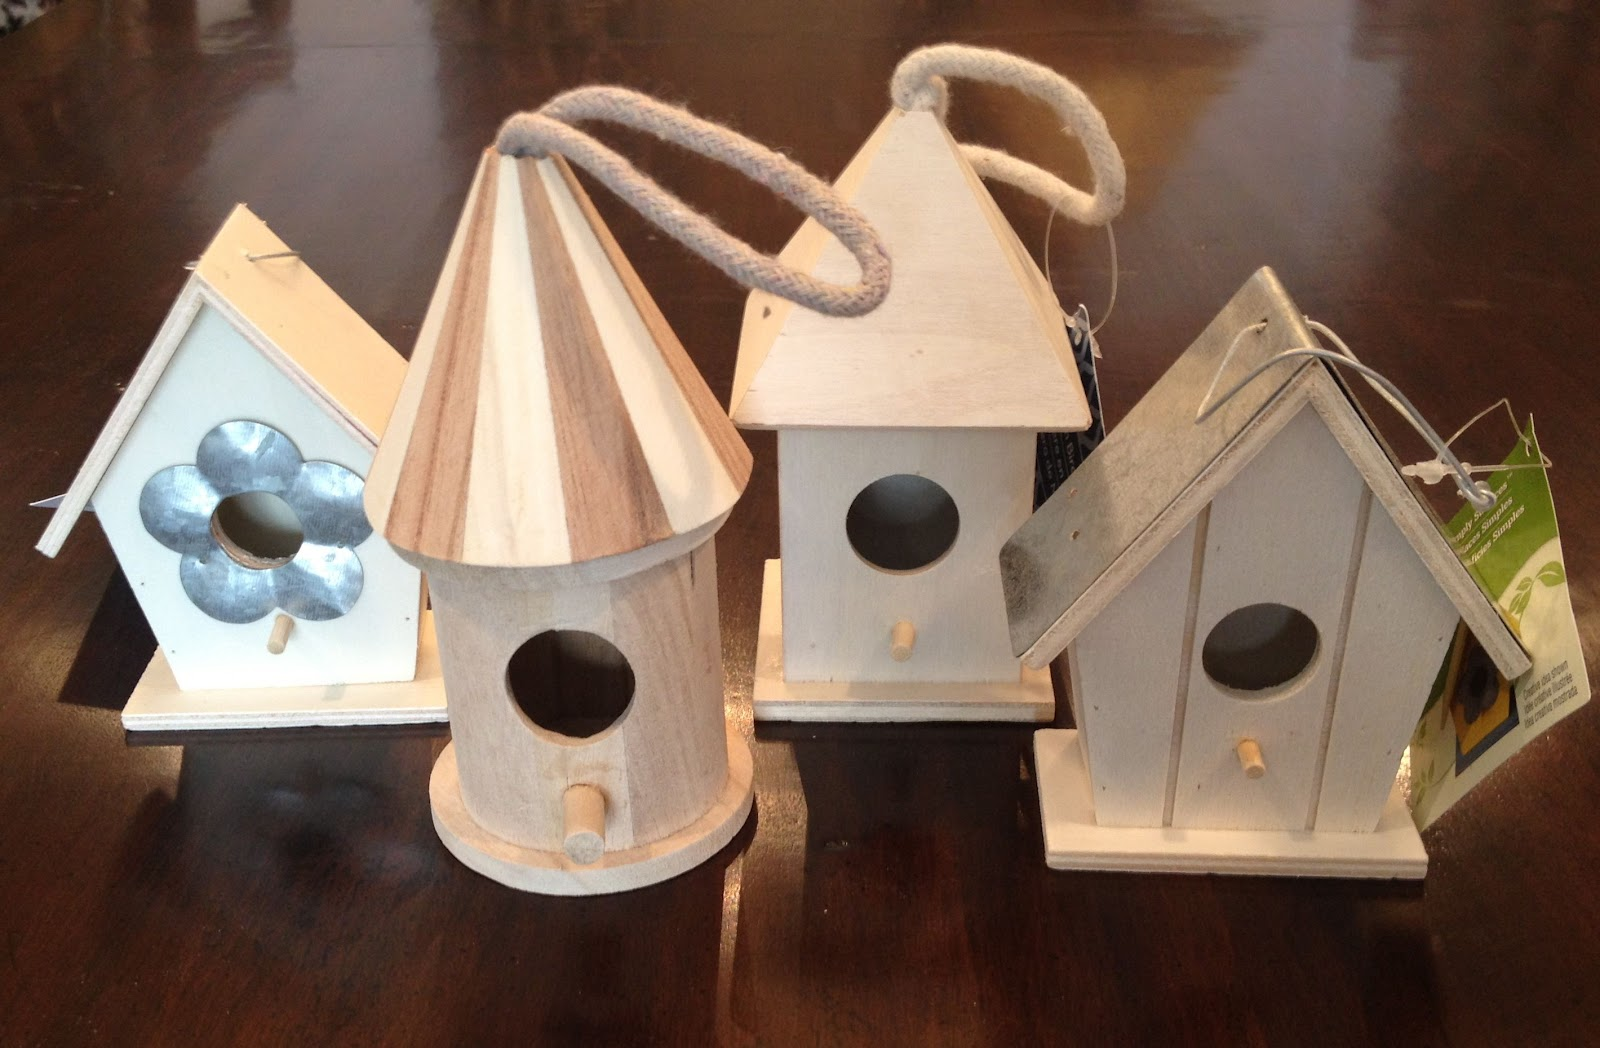 Easter Table Decorations: DIY Birdhouse Place Cards ...